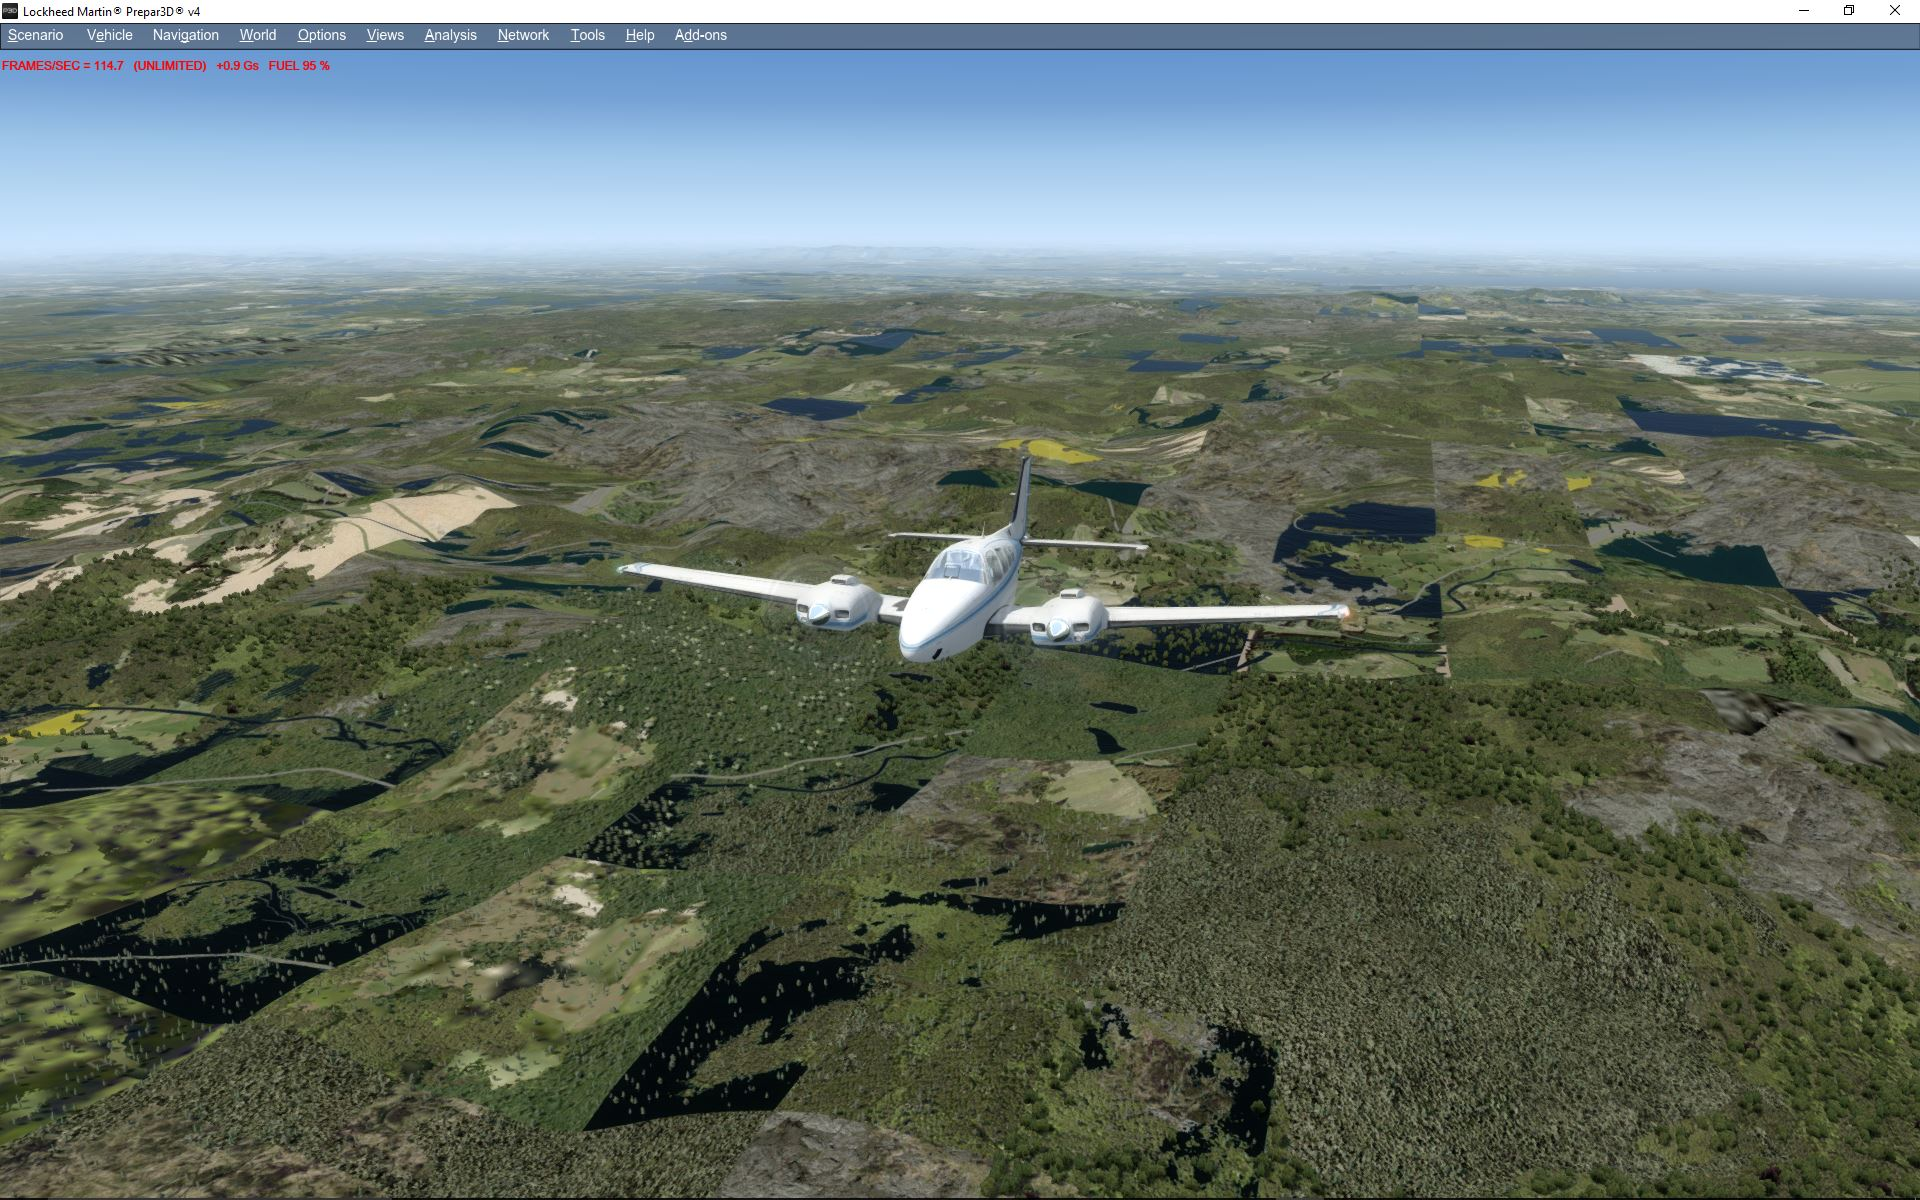 P3Dv4 HF1 - ORBX Tiles Slow and Mismatched - General Discussion - no